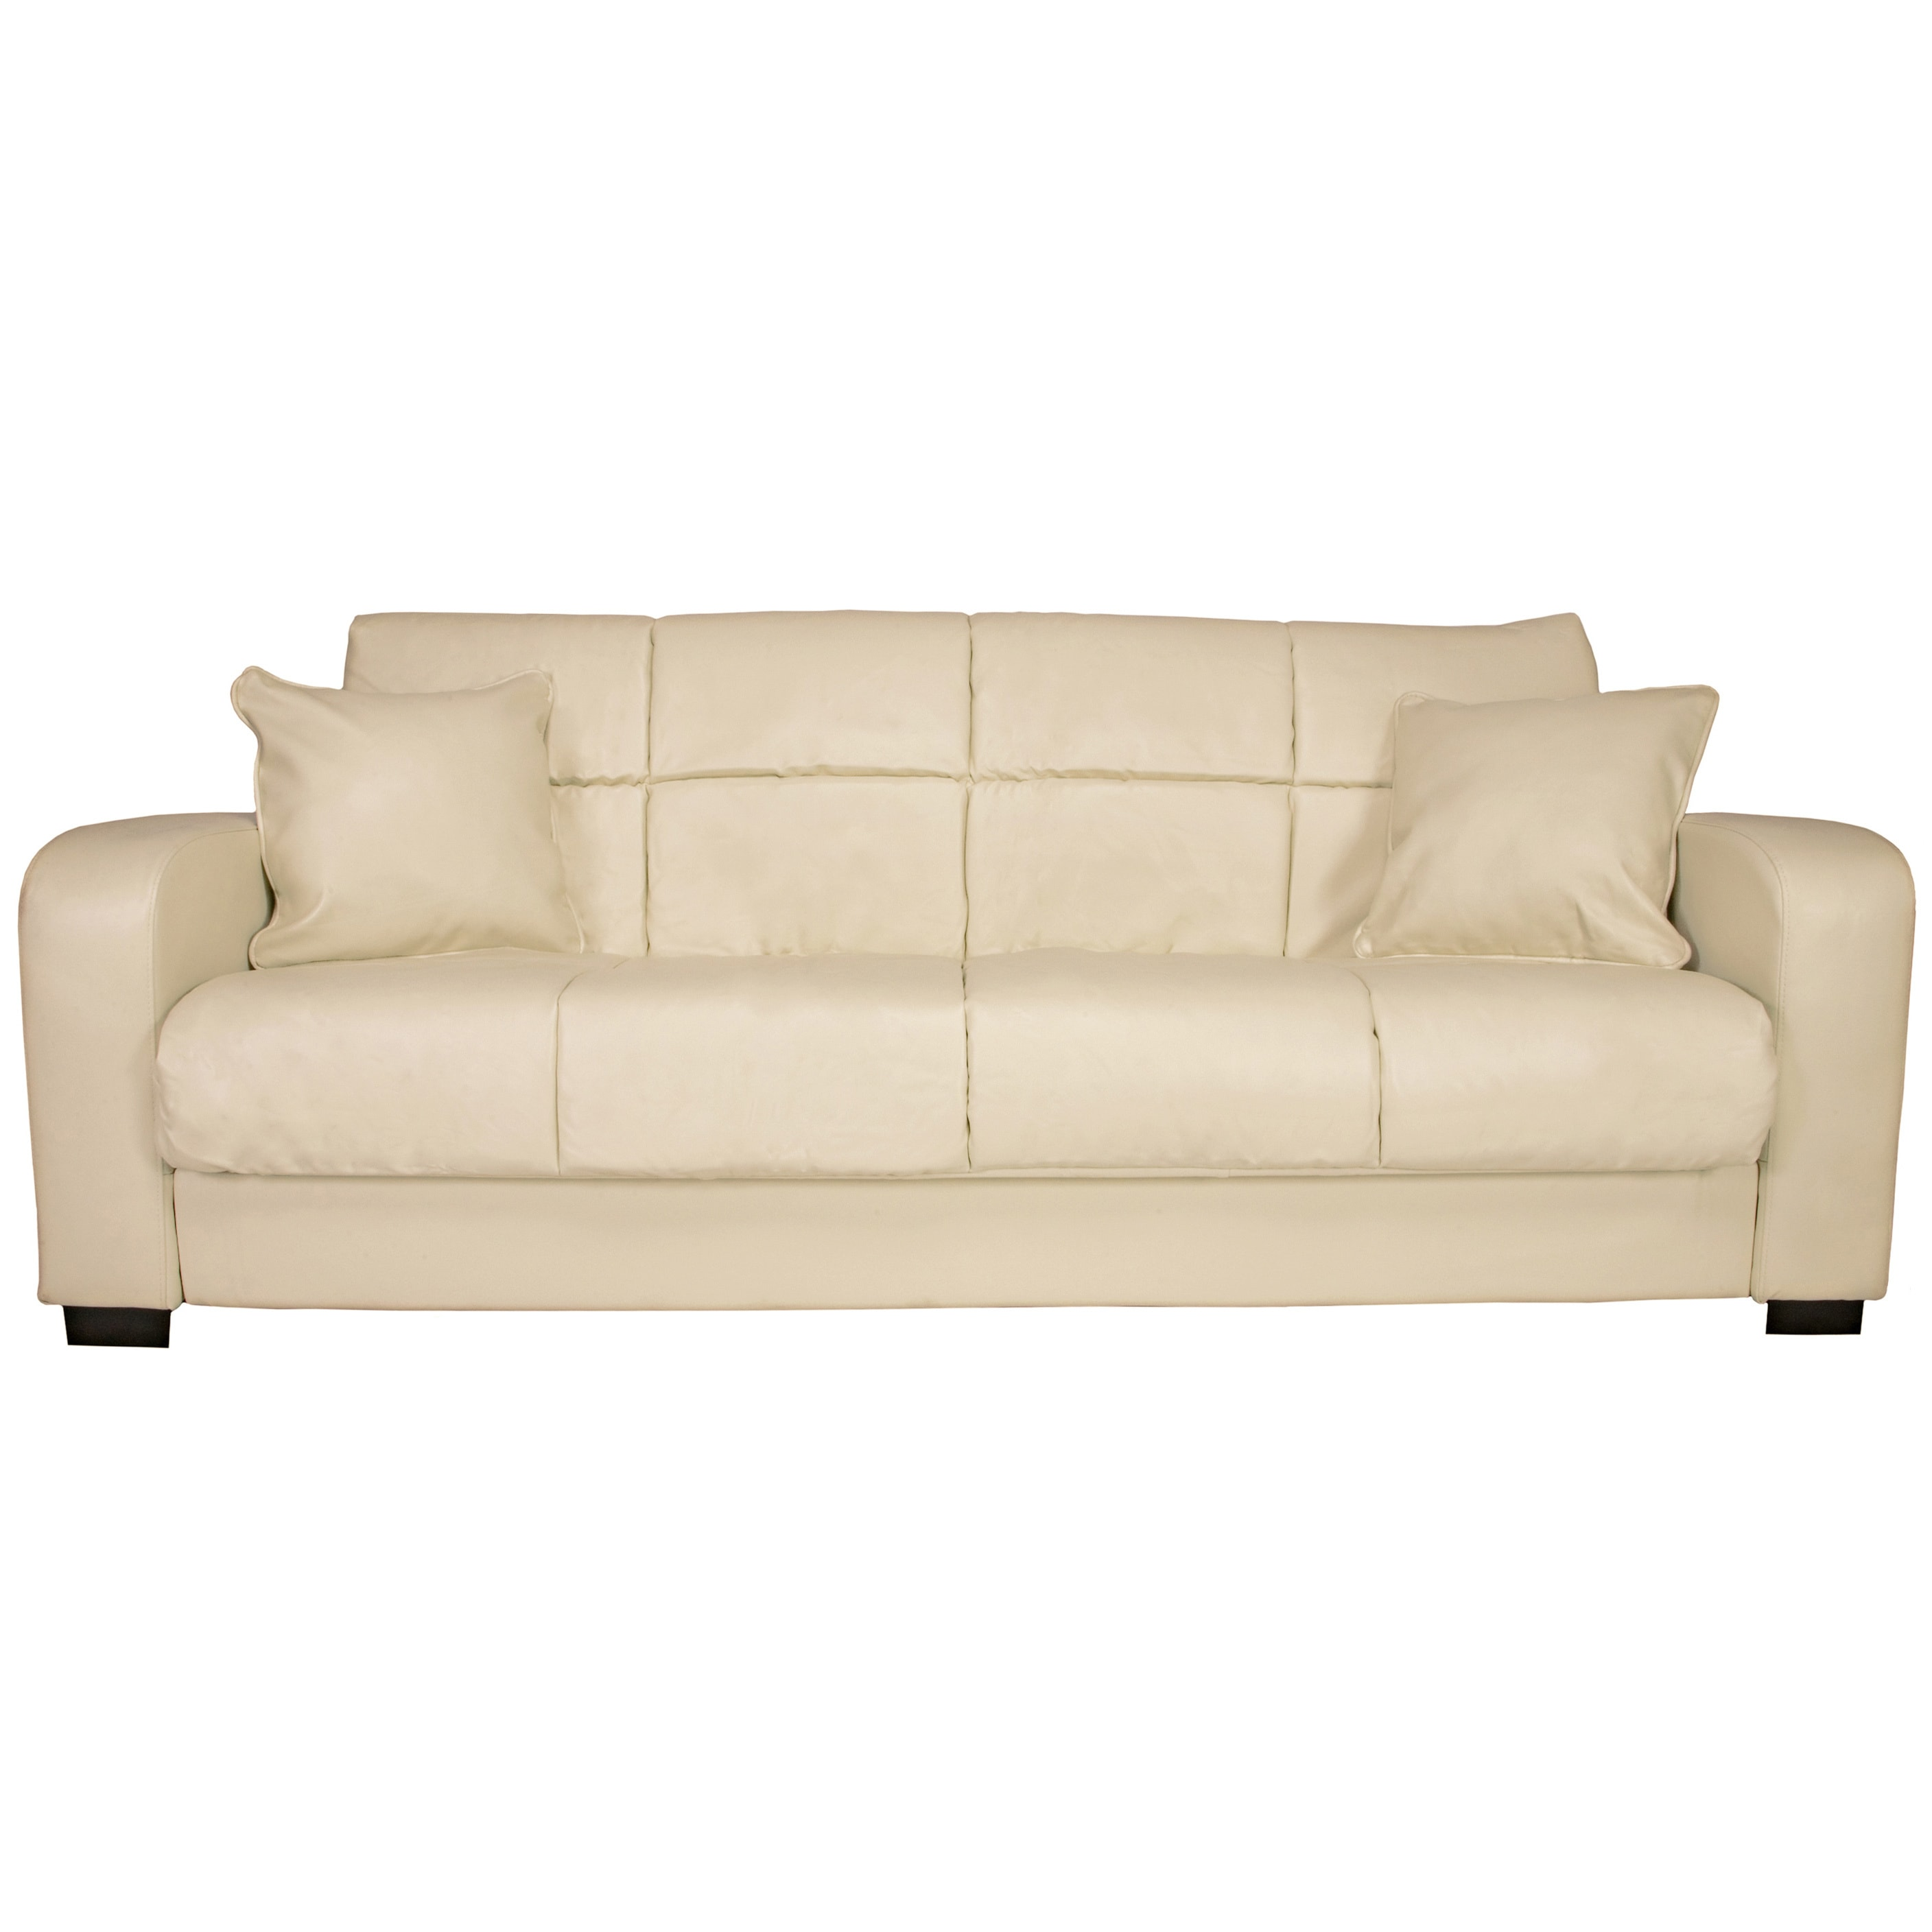 Portfolio Turco Convert-a-Couch� Cream Renu Leather Futon Sofa Sleeper at Sears.com